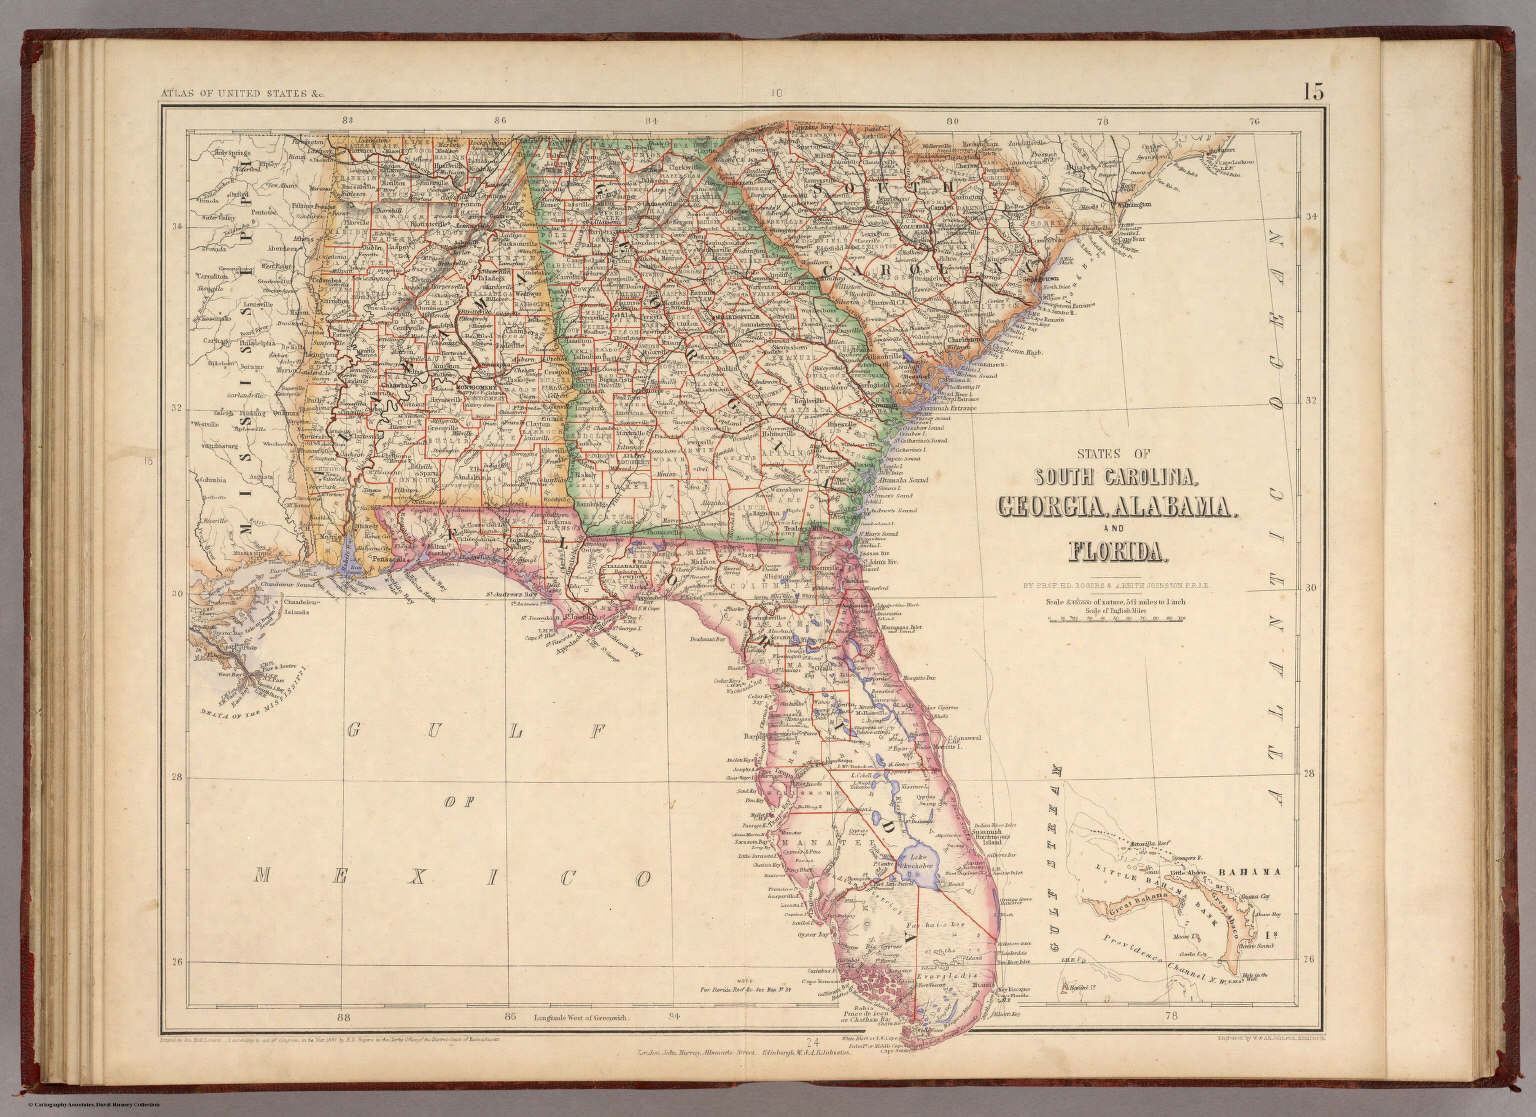 Florida And Georgia Map.States Of South Carolina Georgia Alabama And Florida Rogers